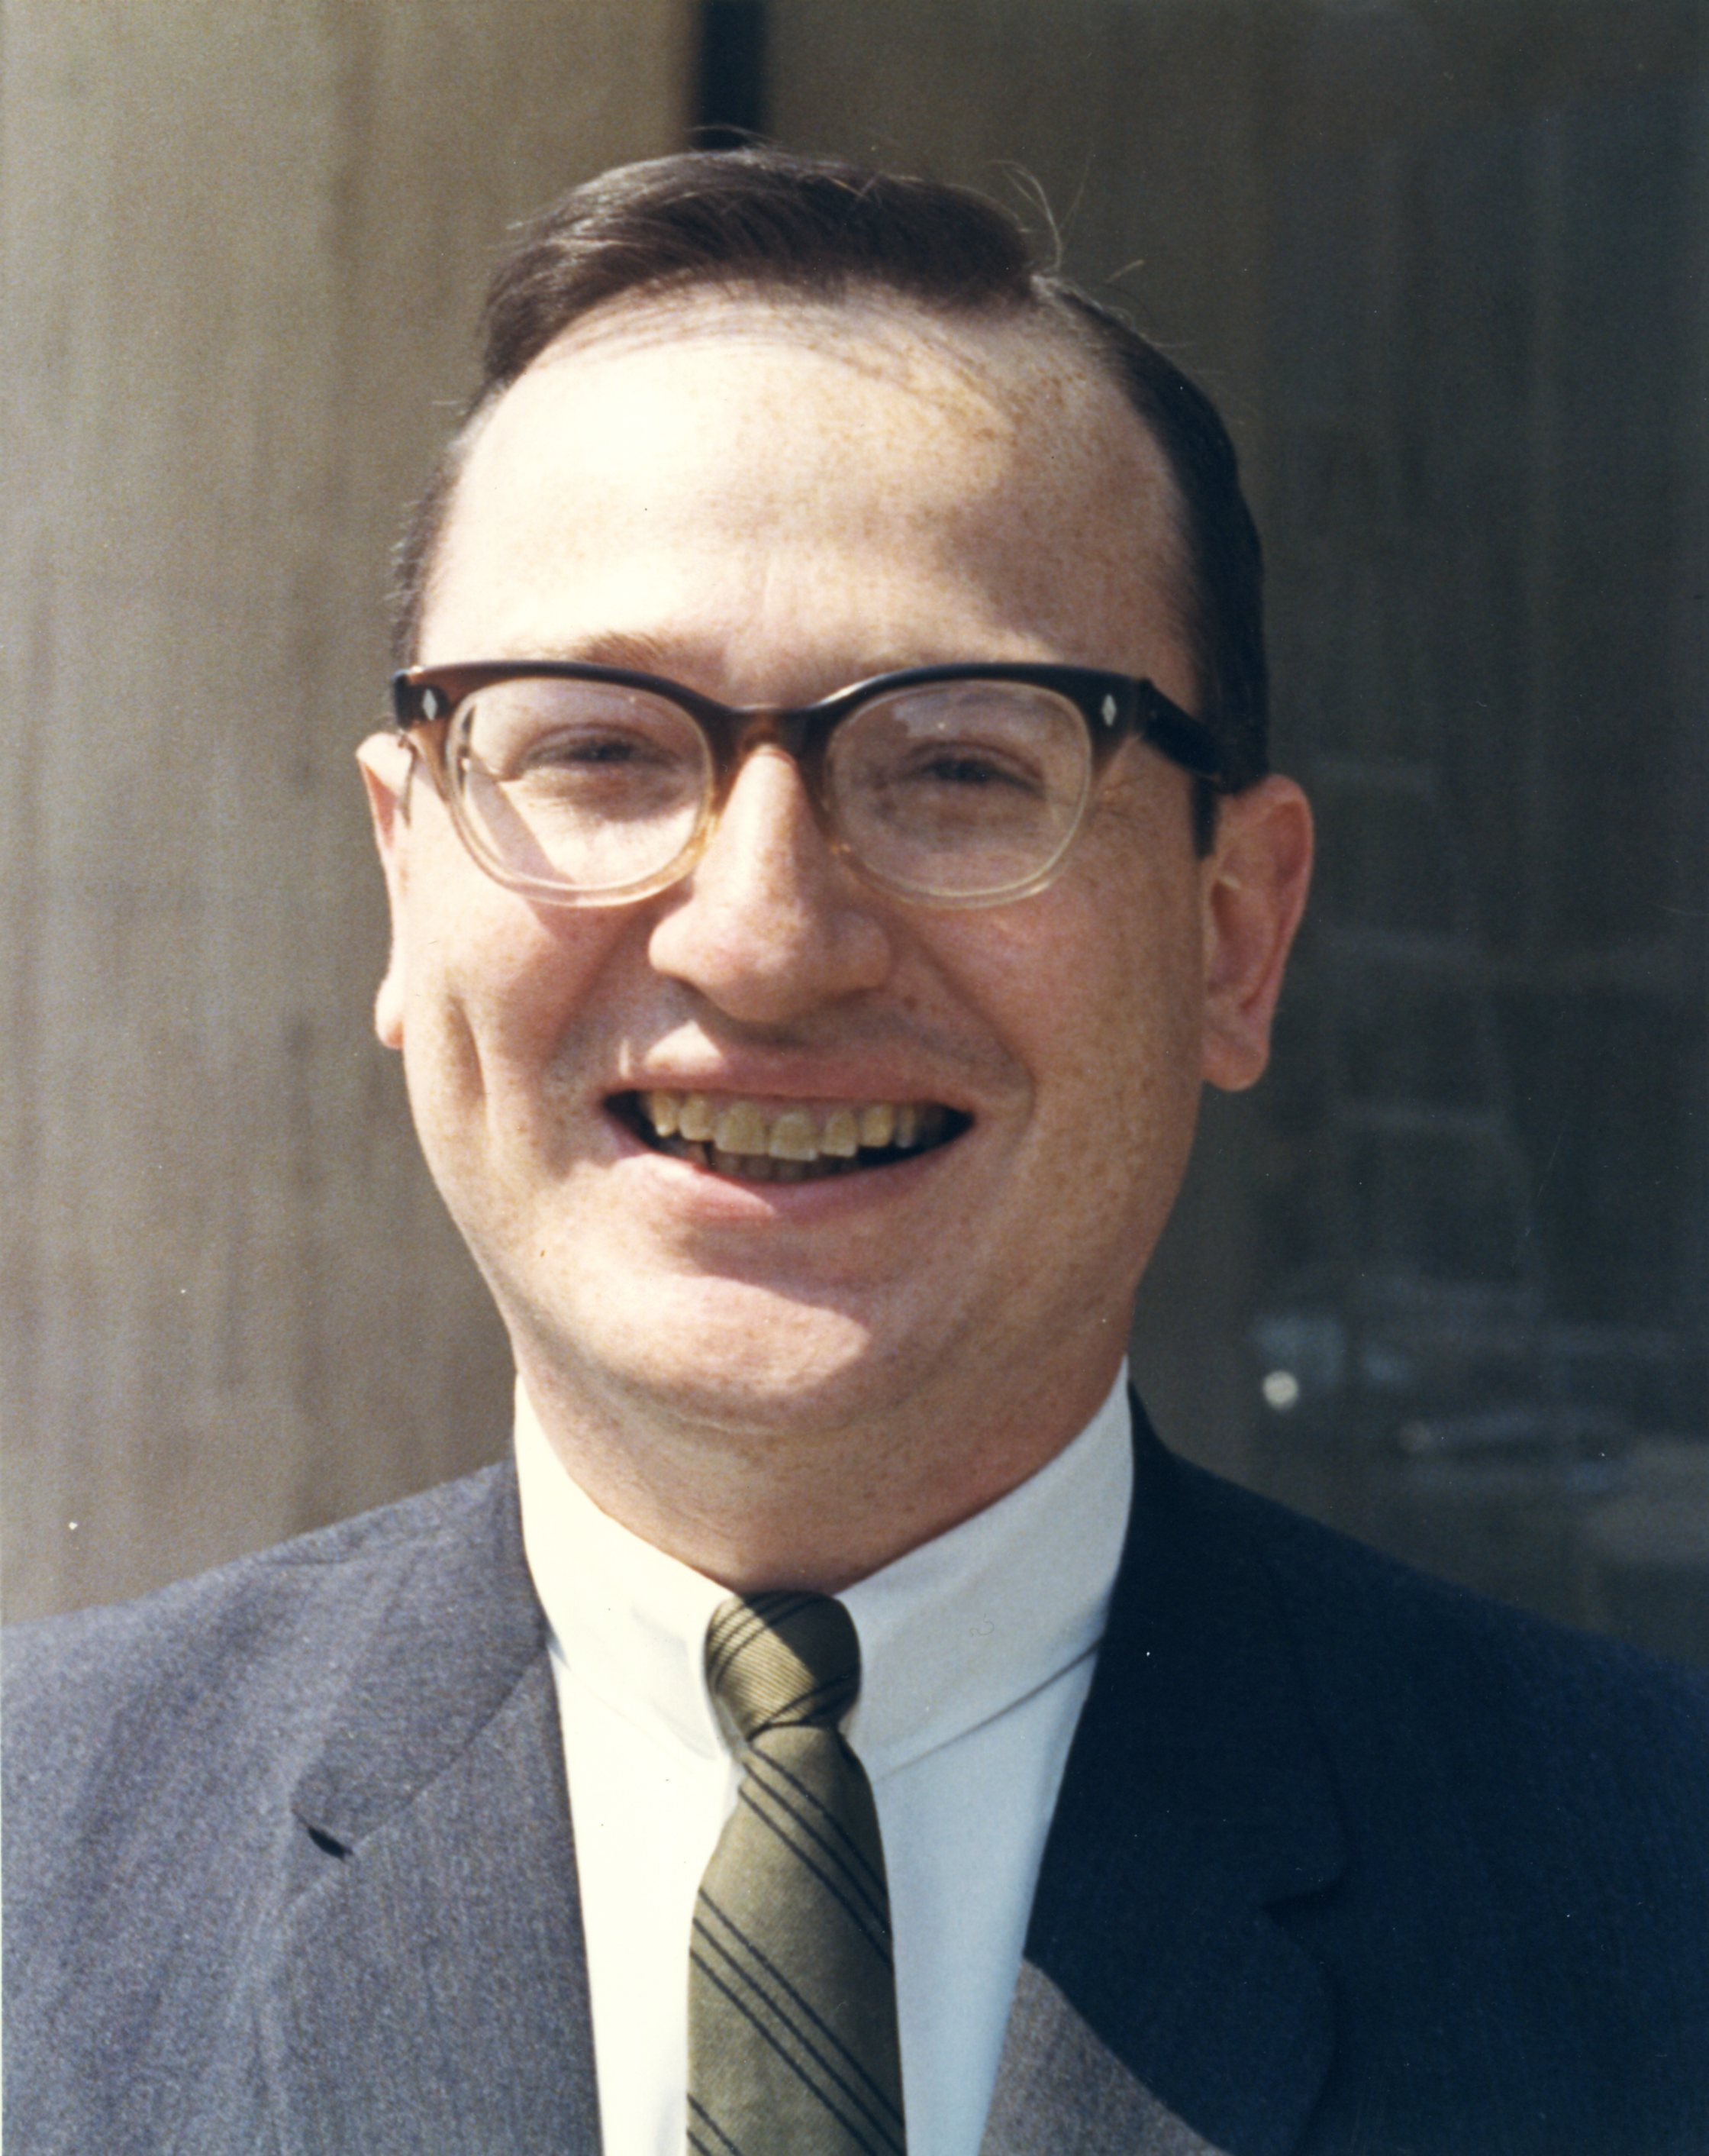 Photograph of Warren Cikins